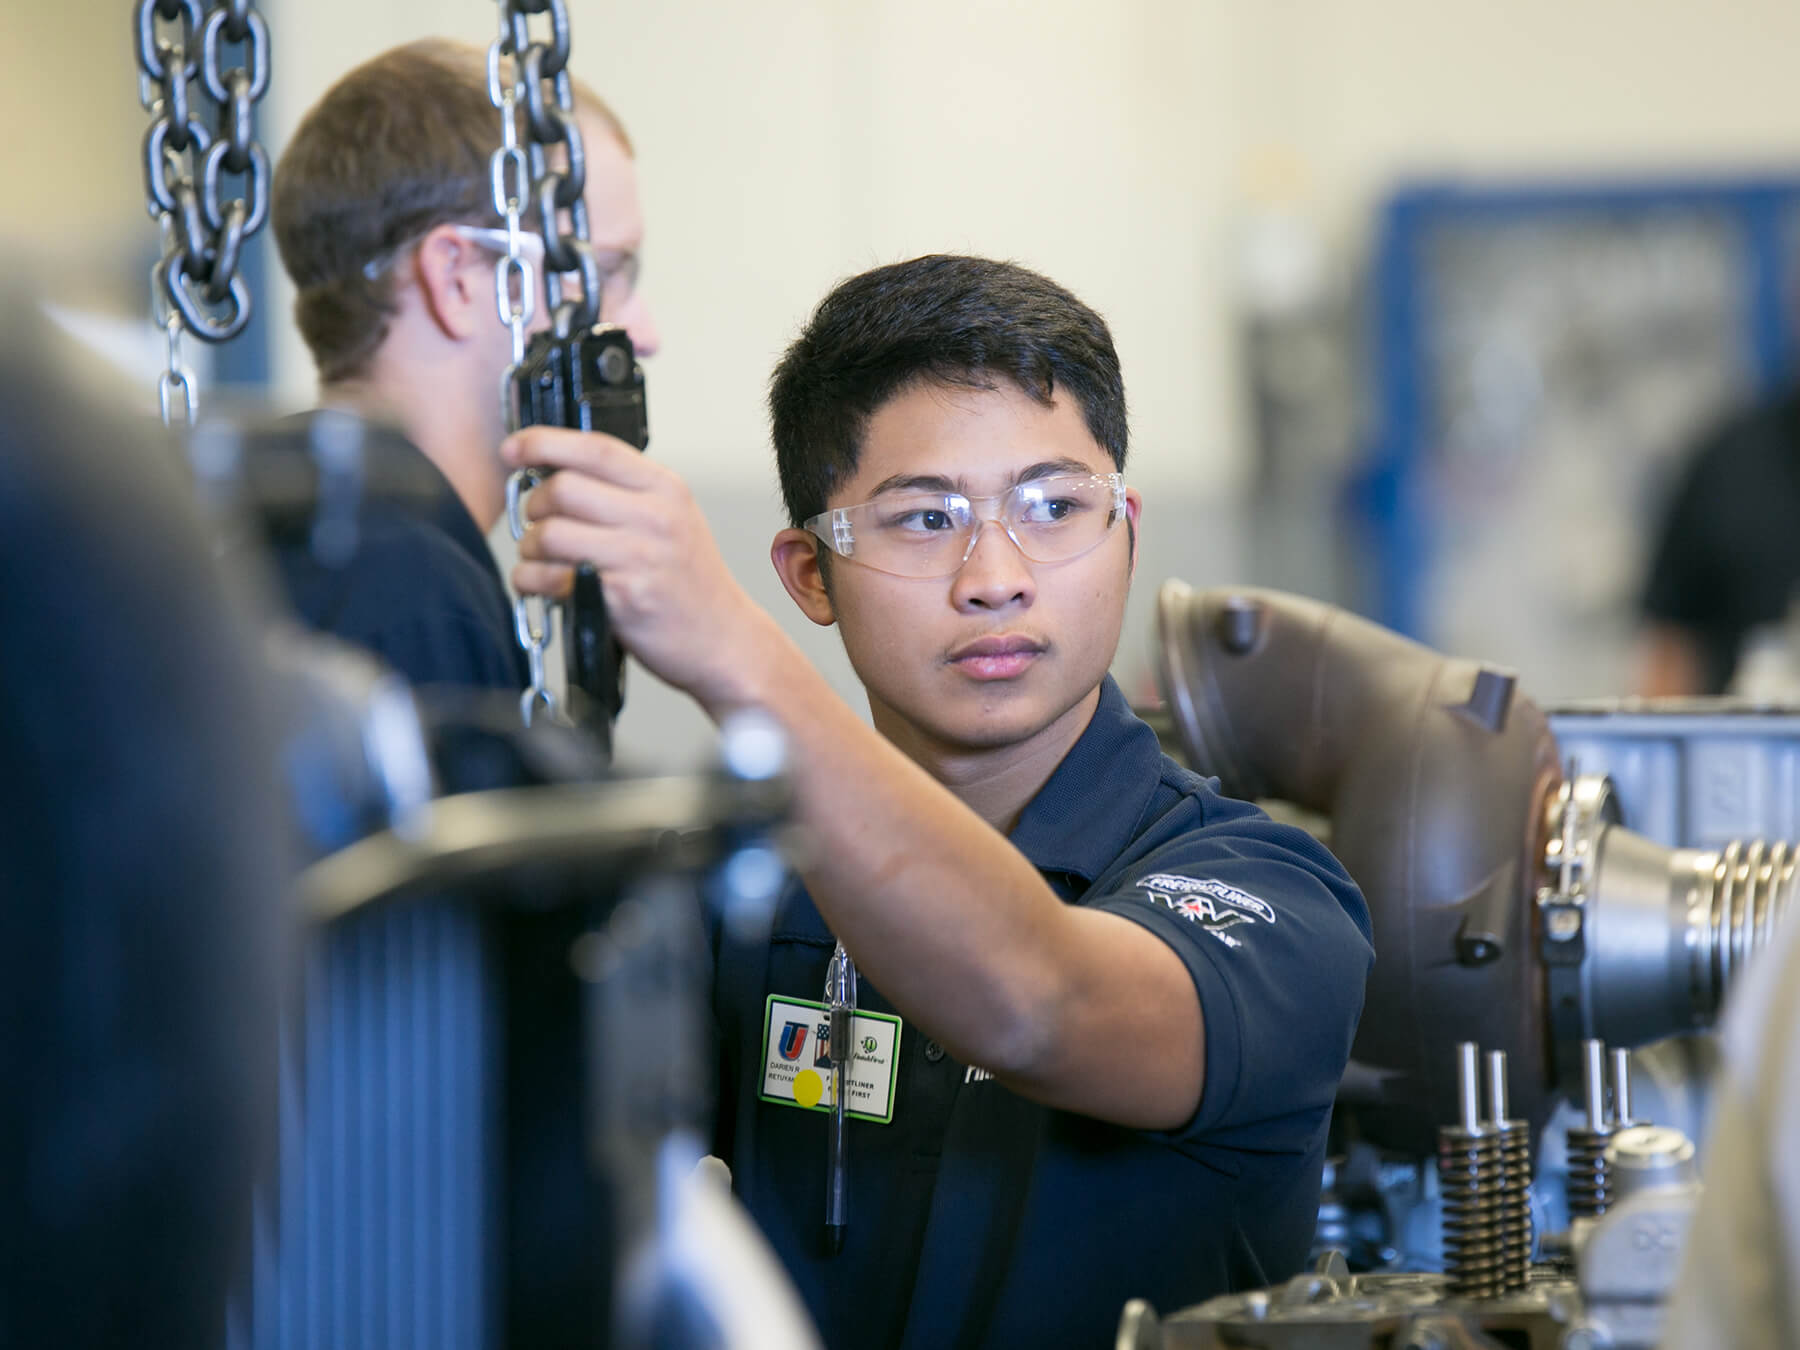 Diesel Freightliner Students working on an engine at Avondale Campus